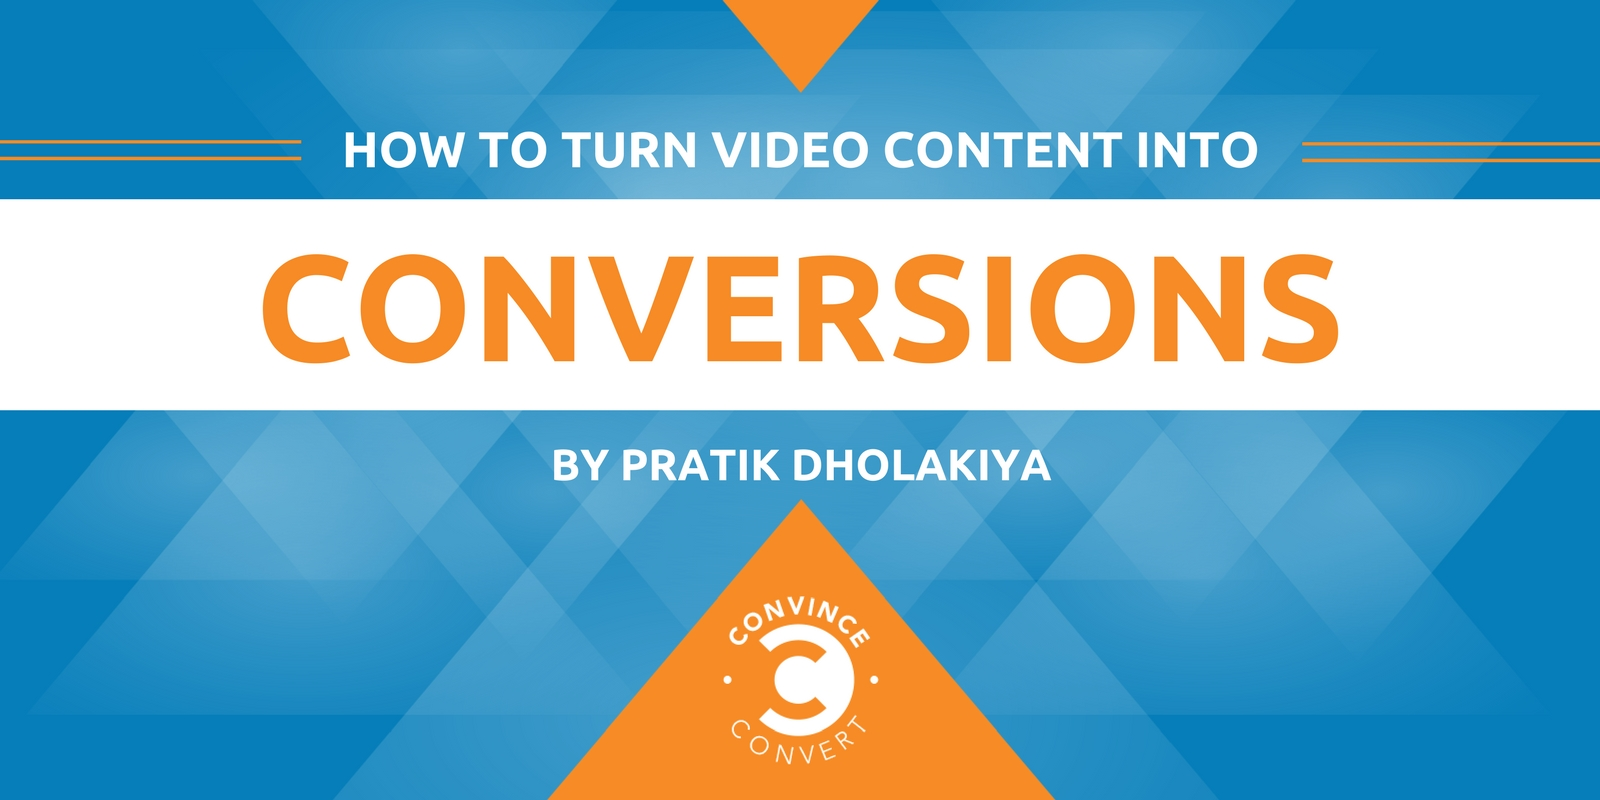 How to Turn Video Content into Conversions